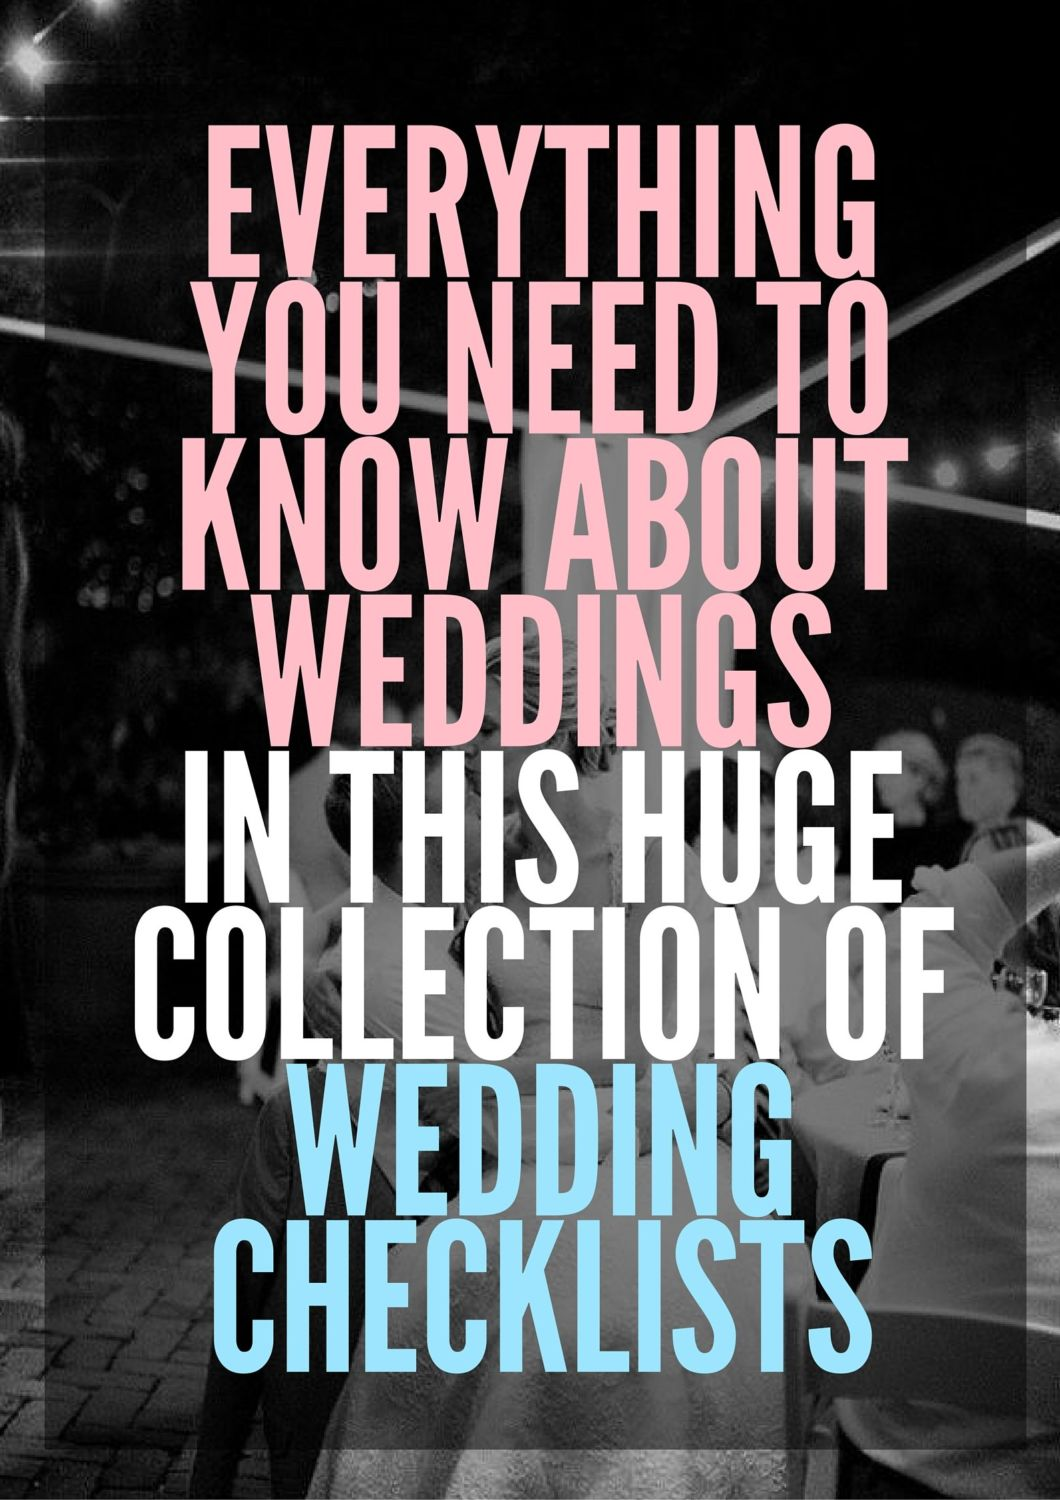 collection of wedding checklists